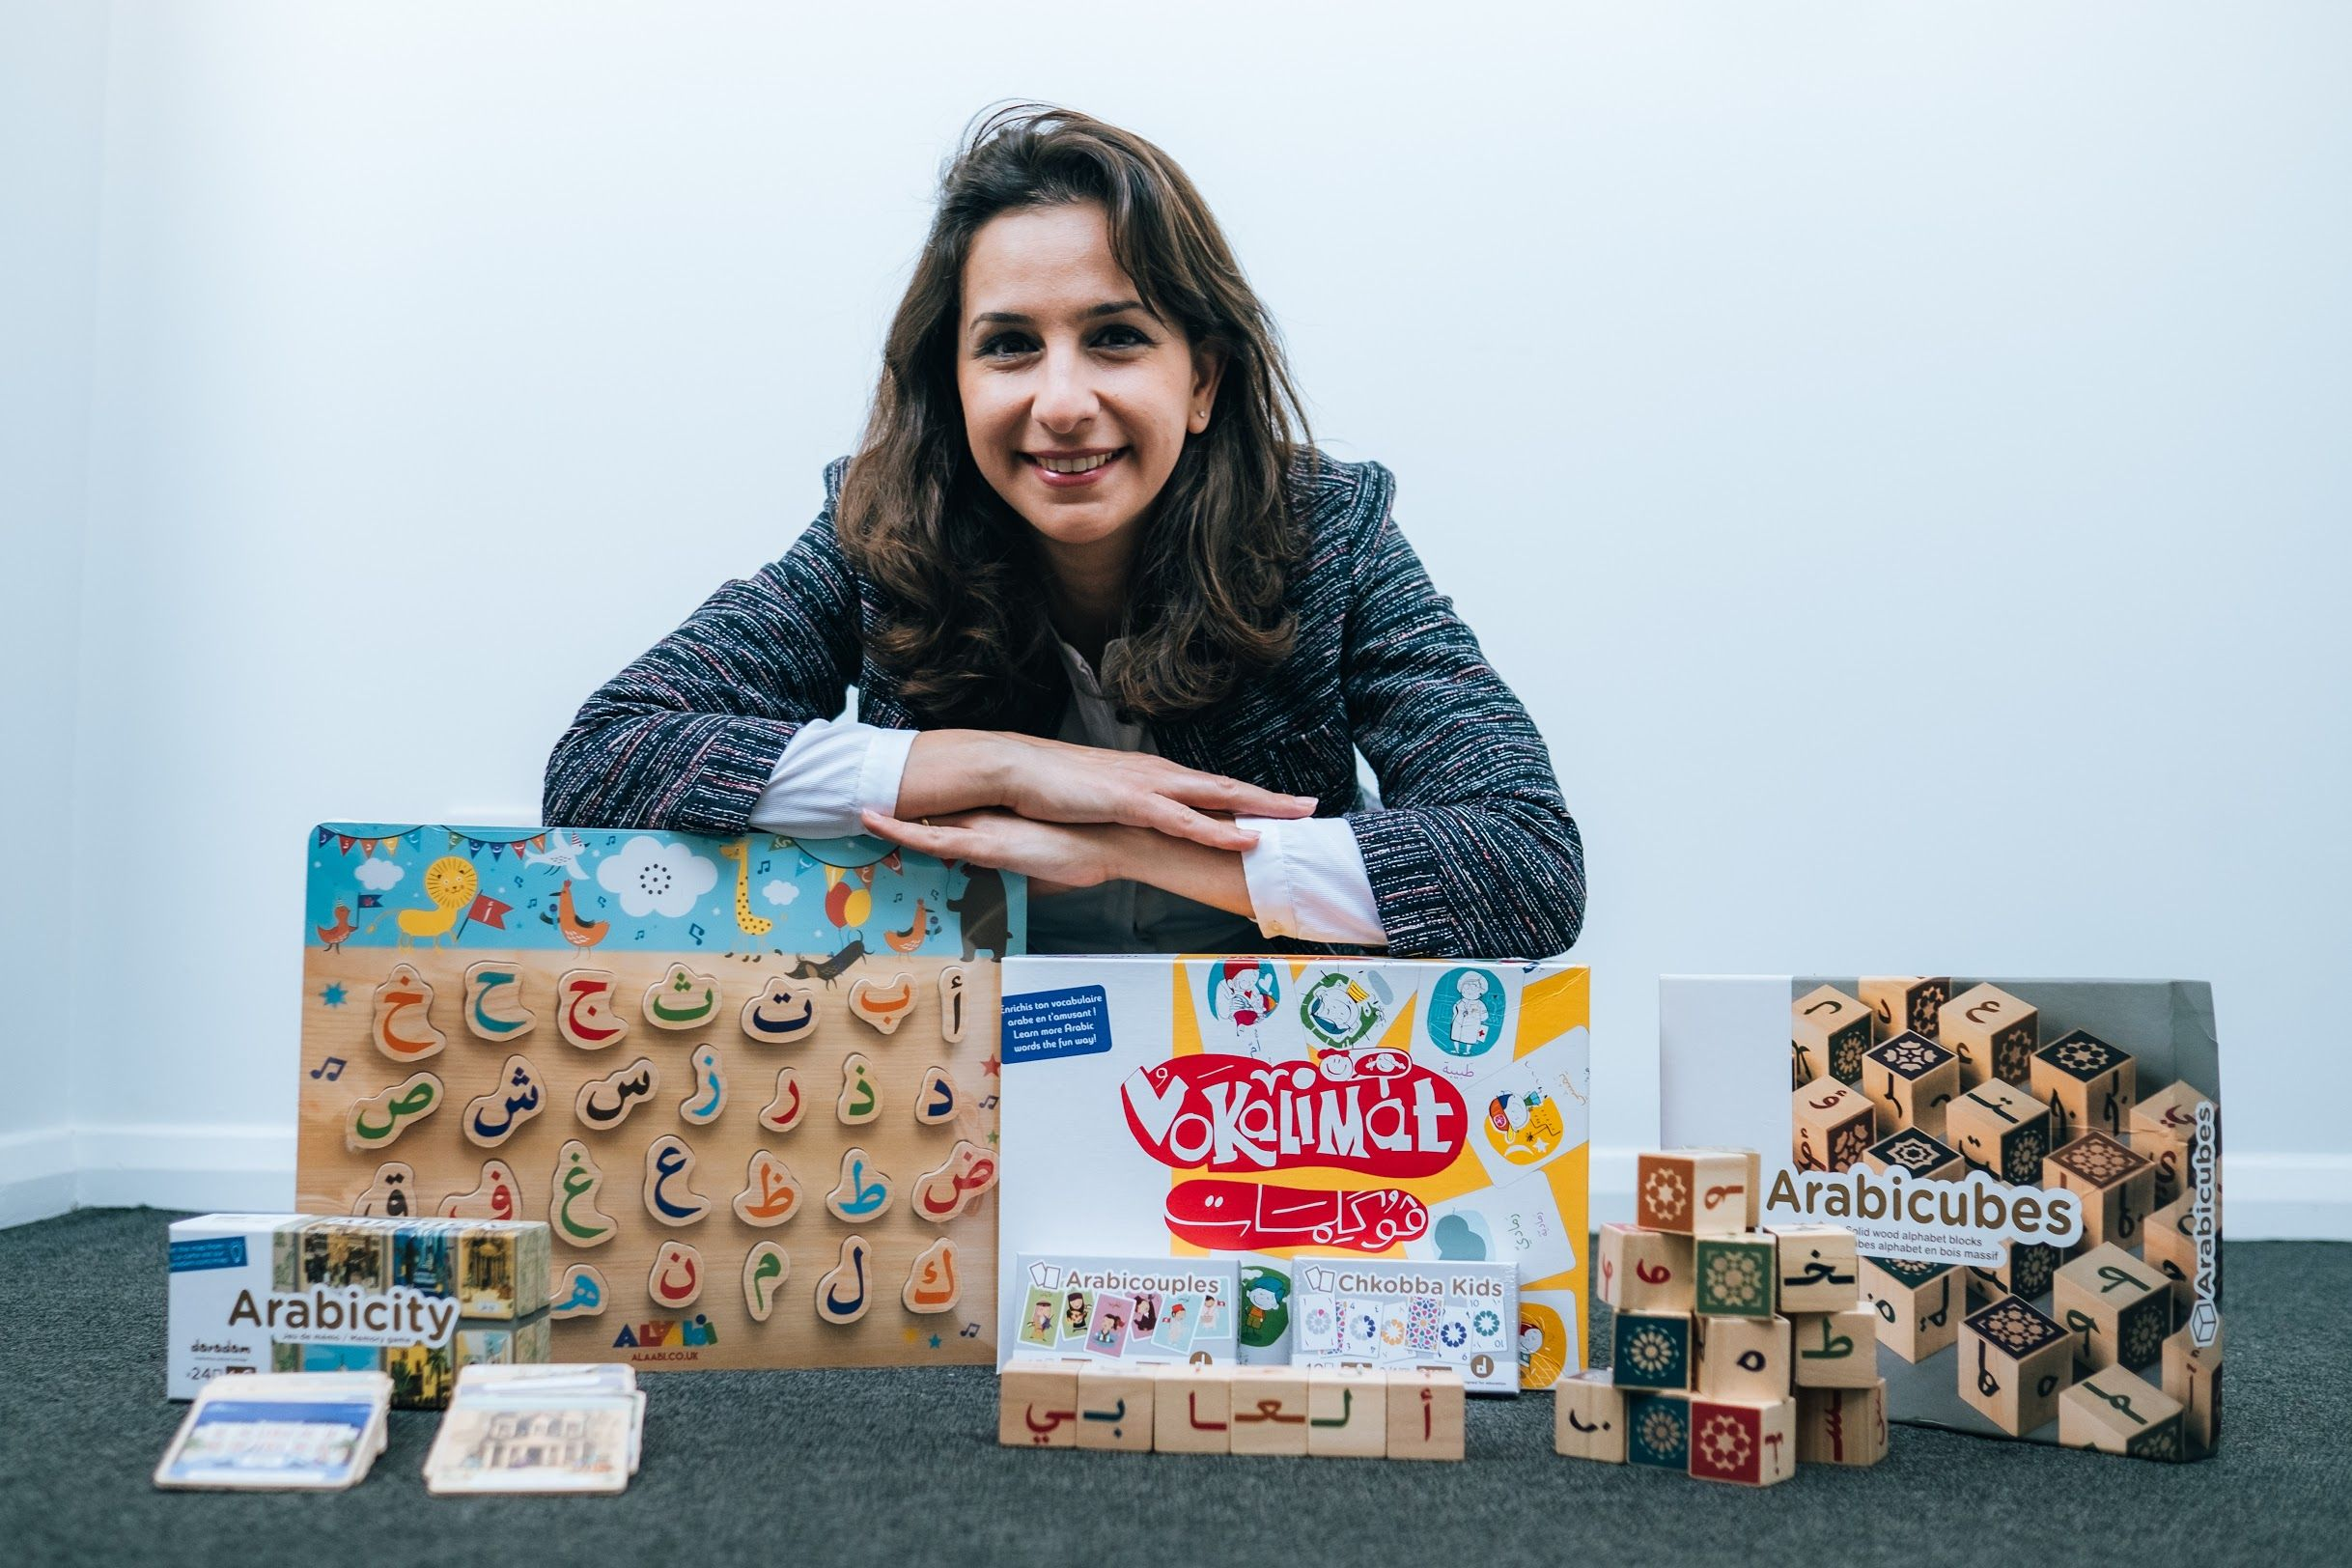 Hala Ghraib encourages teaching Arabic through play